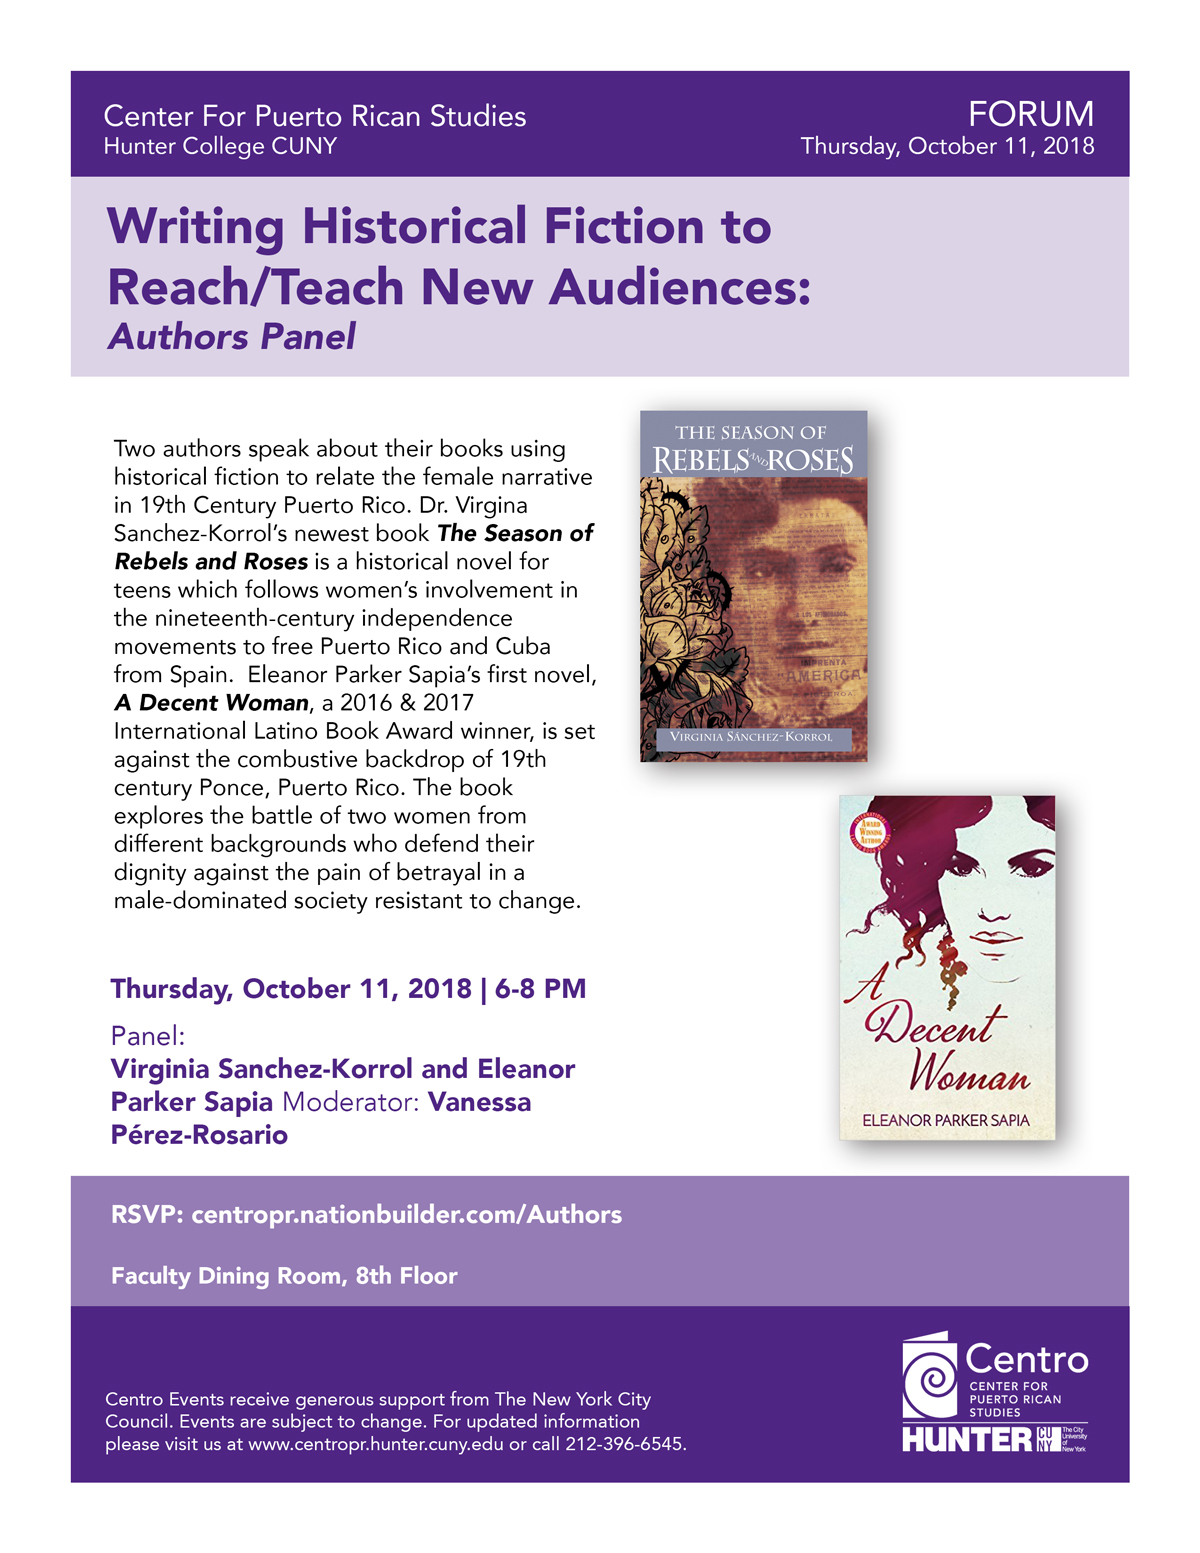 Read more about Writing Historical Fiction to Reach/Teach New Audiences: Puerto Rican Authors Panel